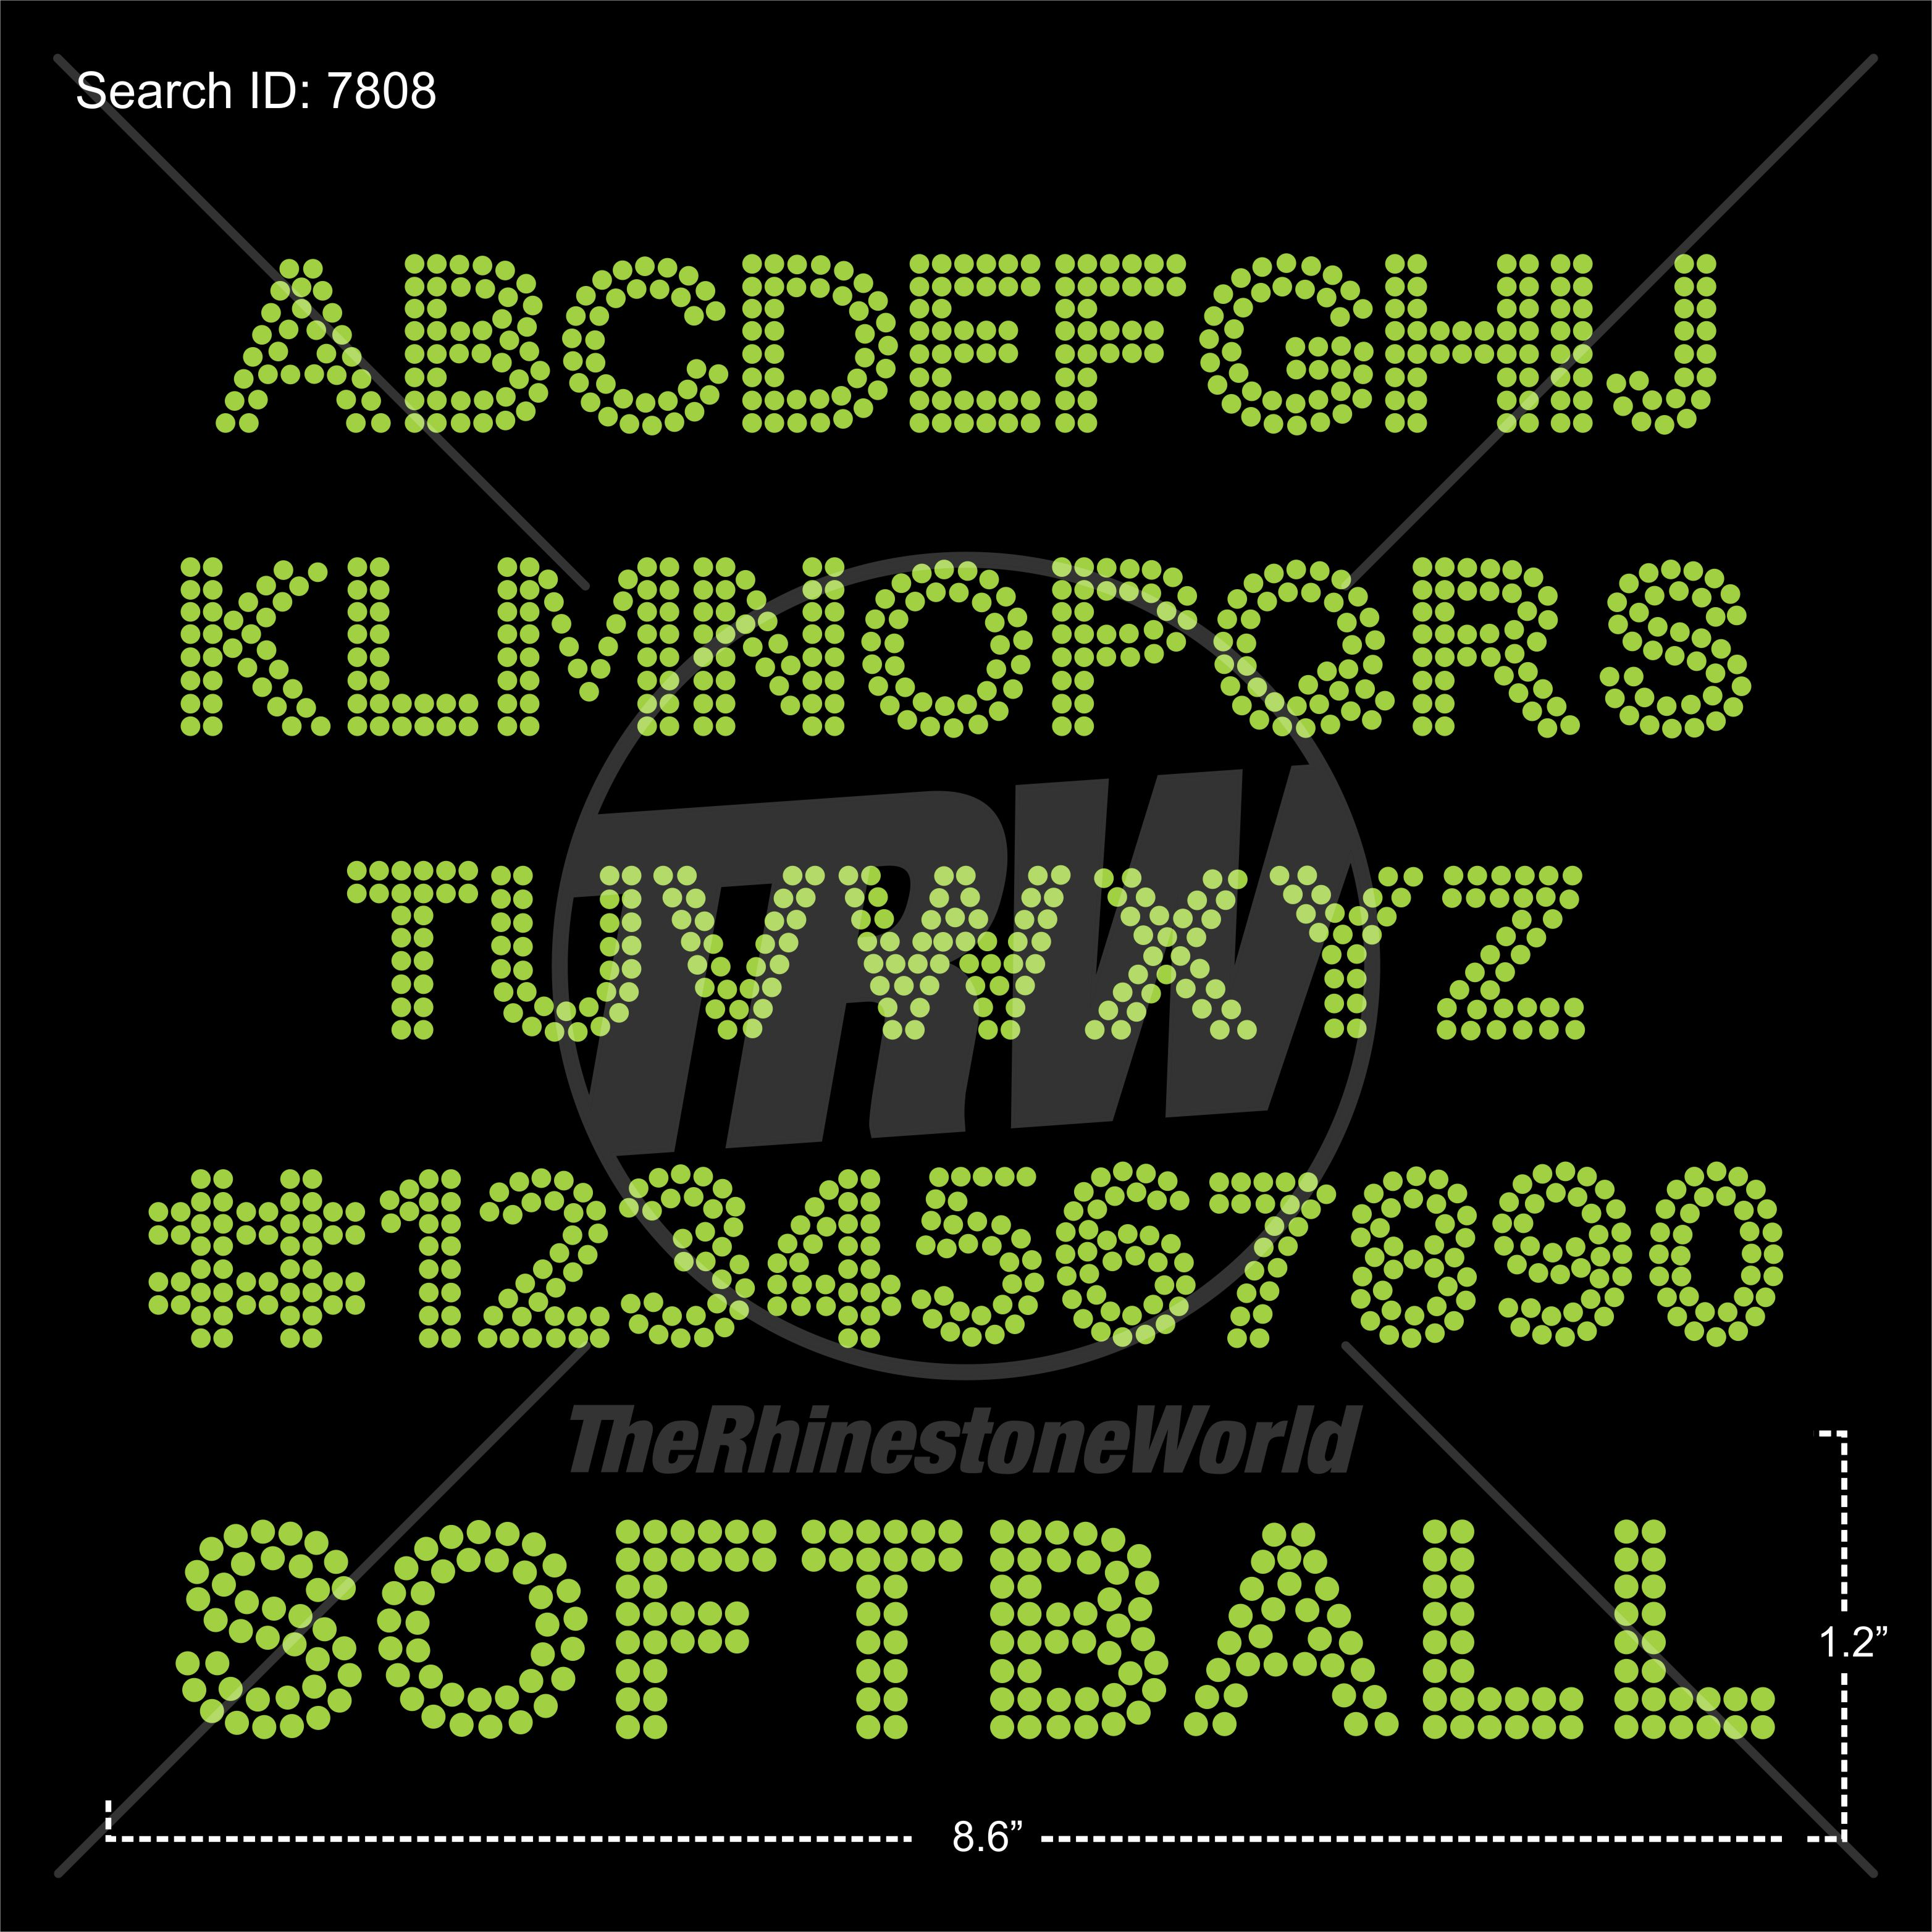 TRW 135 Basic Tote Bag Strap Font and Number Set - Download